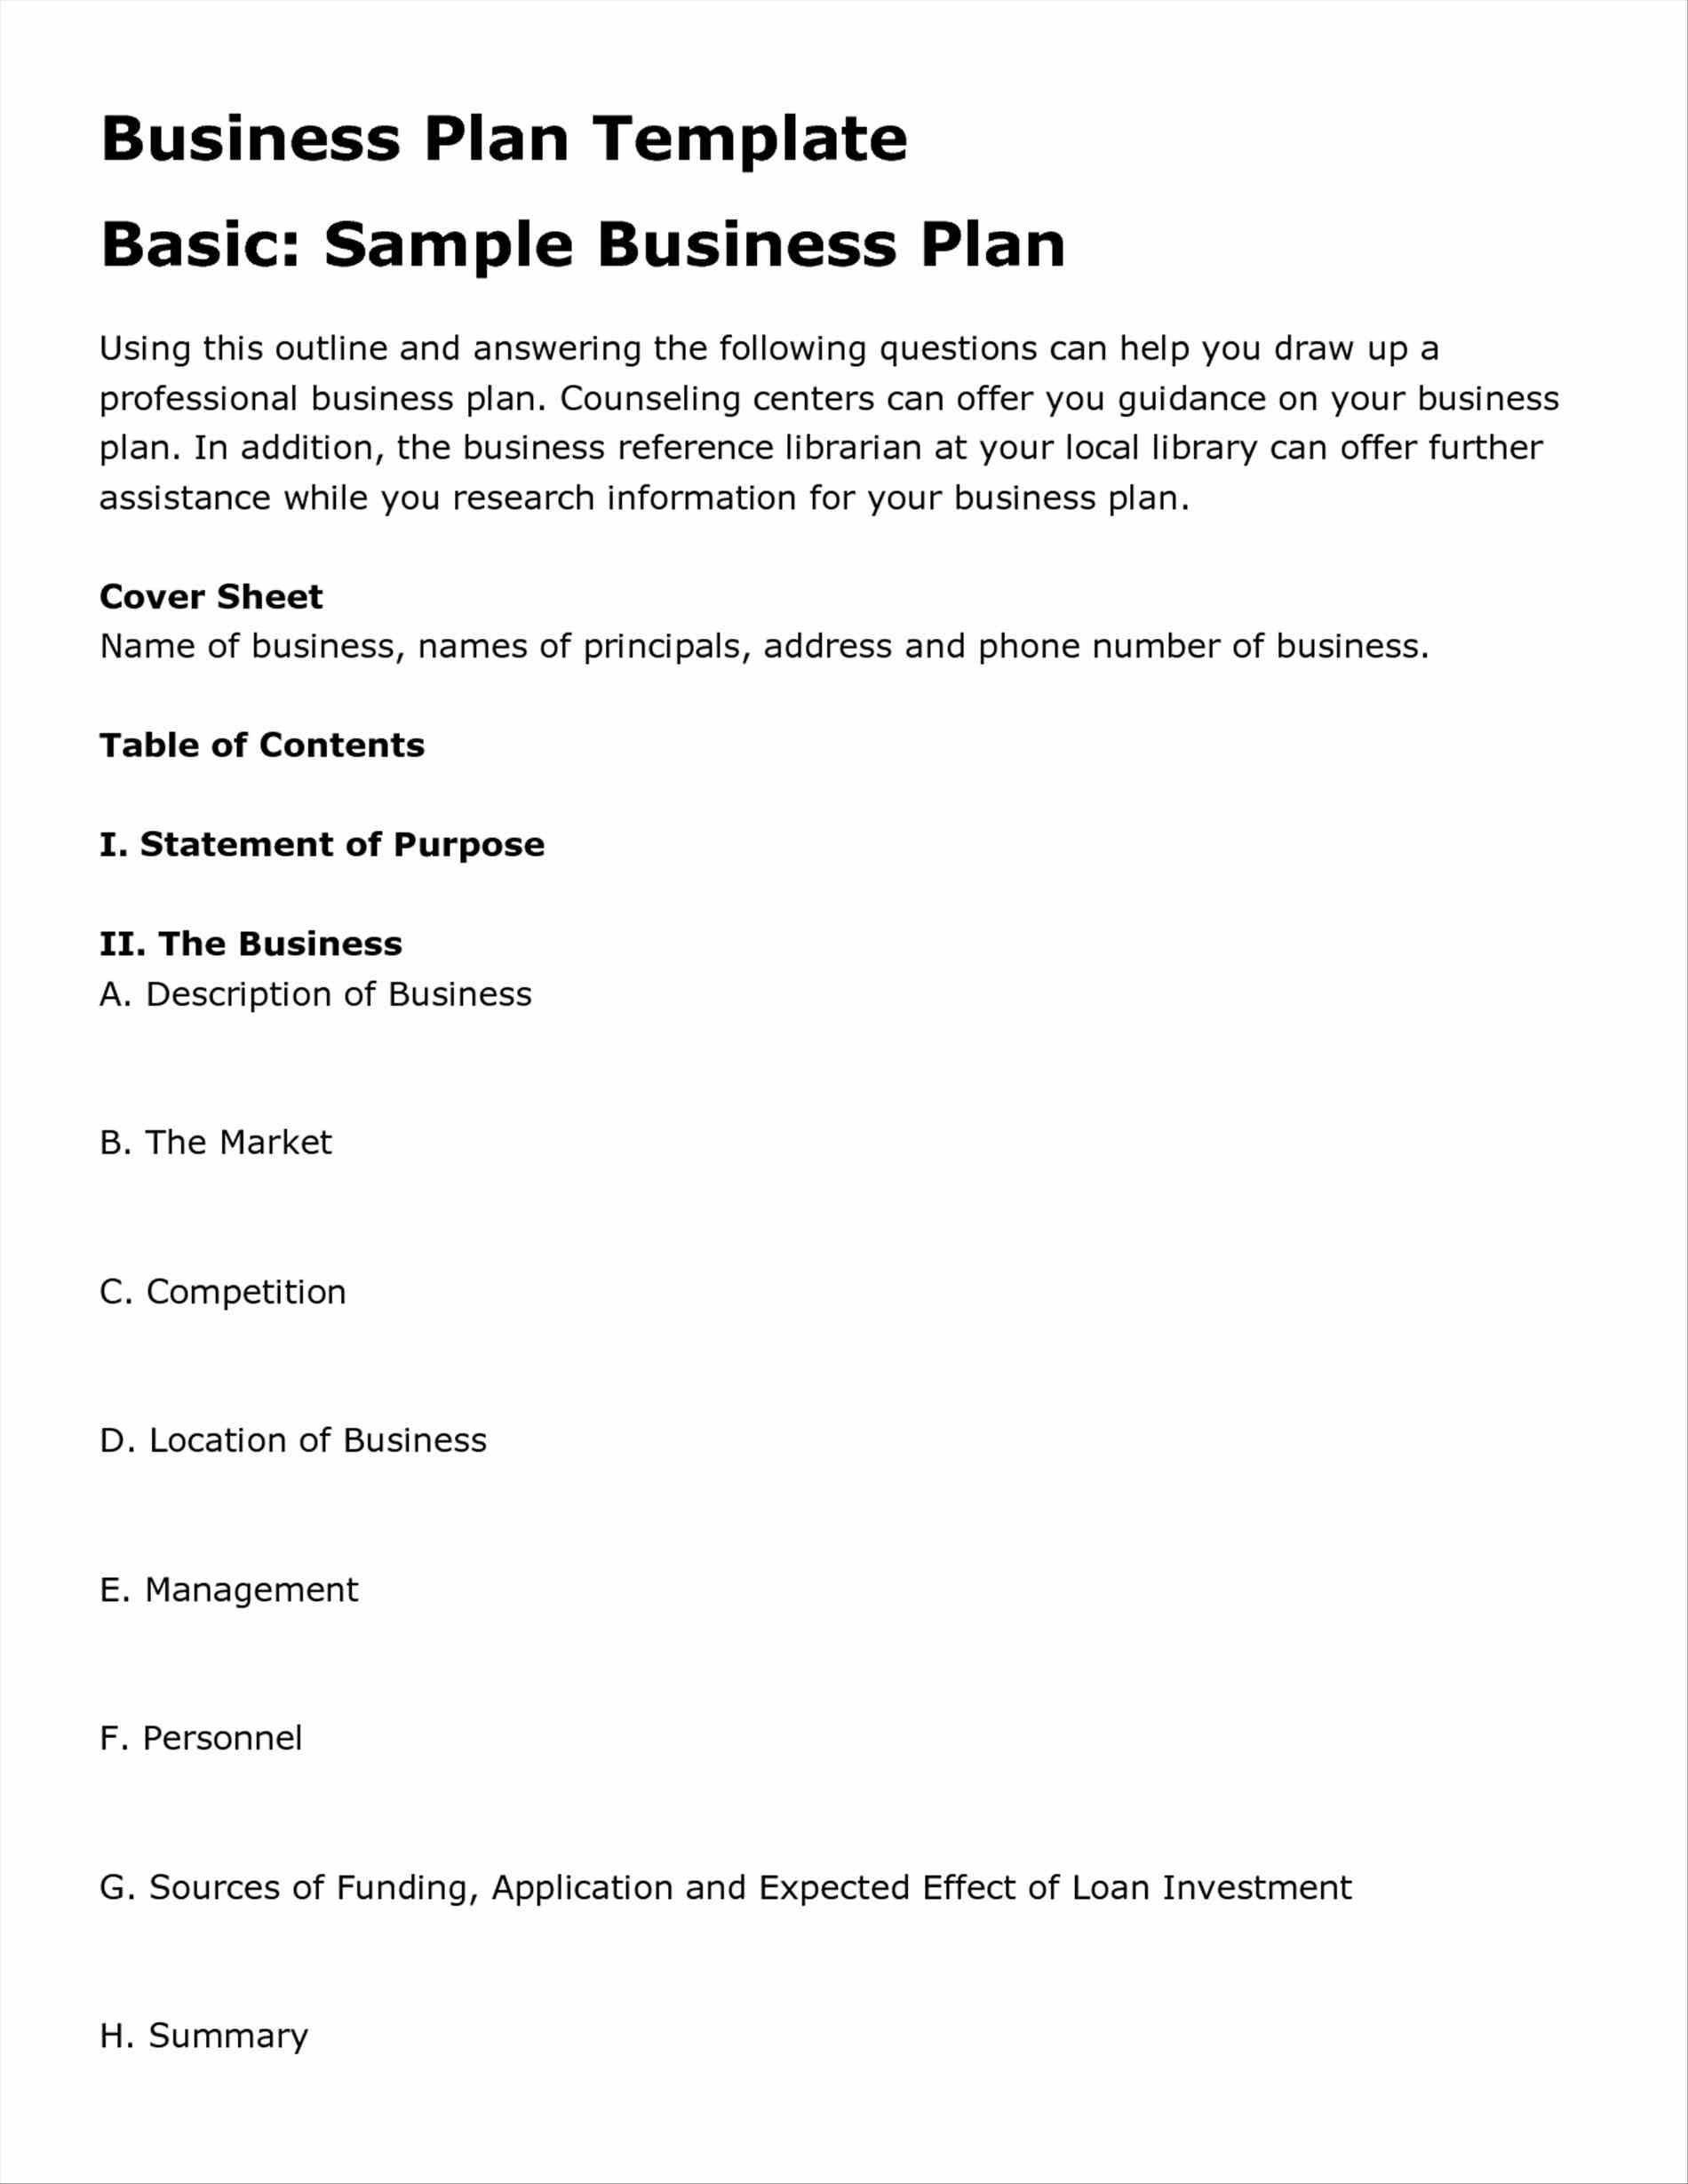 Business plan template restaurant templates in word excel pdf free business plan template restaurant templates in word excel pdf free cafe business plan template restaurant business plan templates in word excel wajeb Choice Image